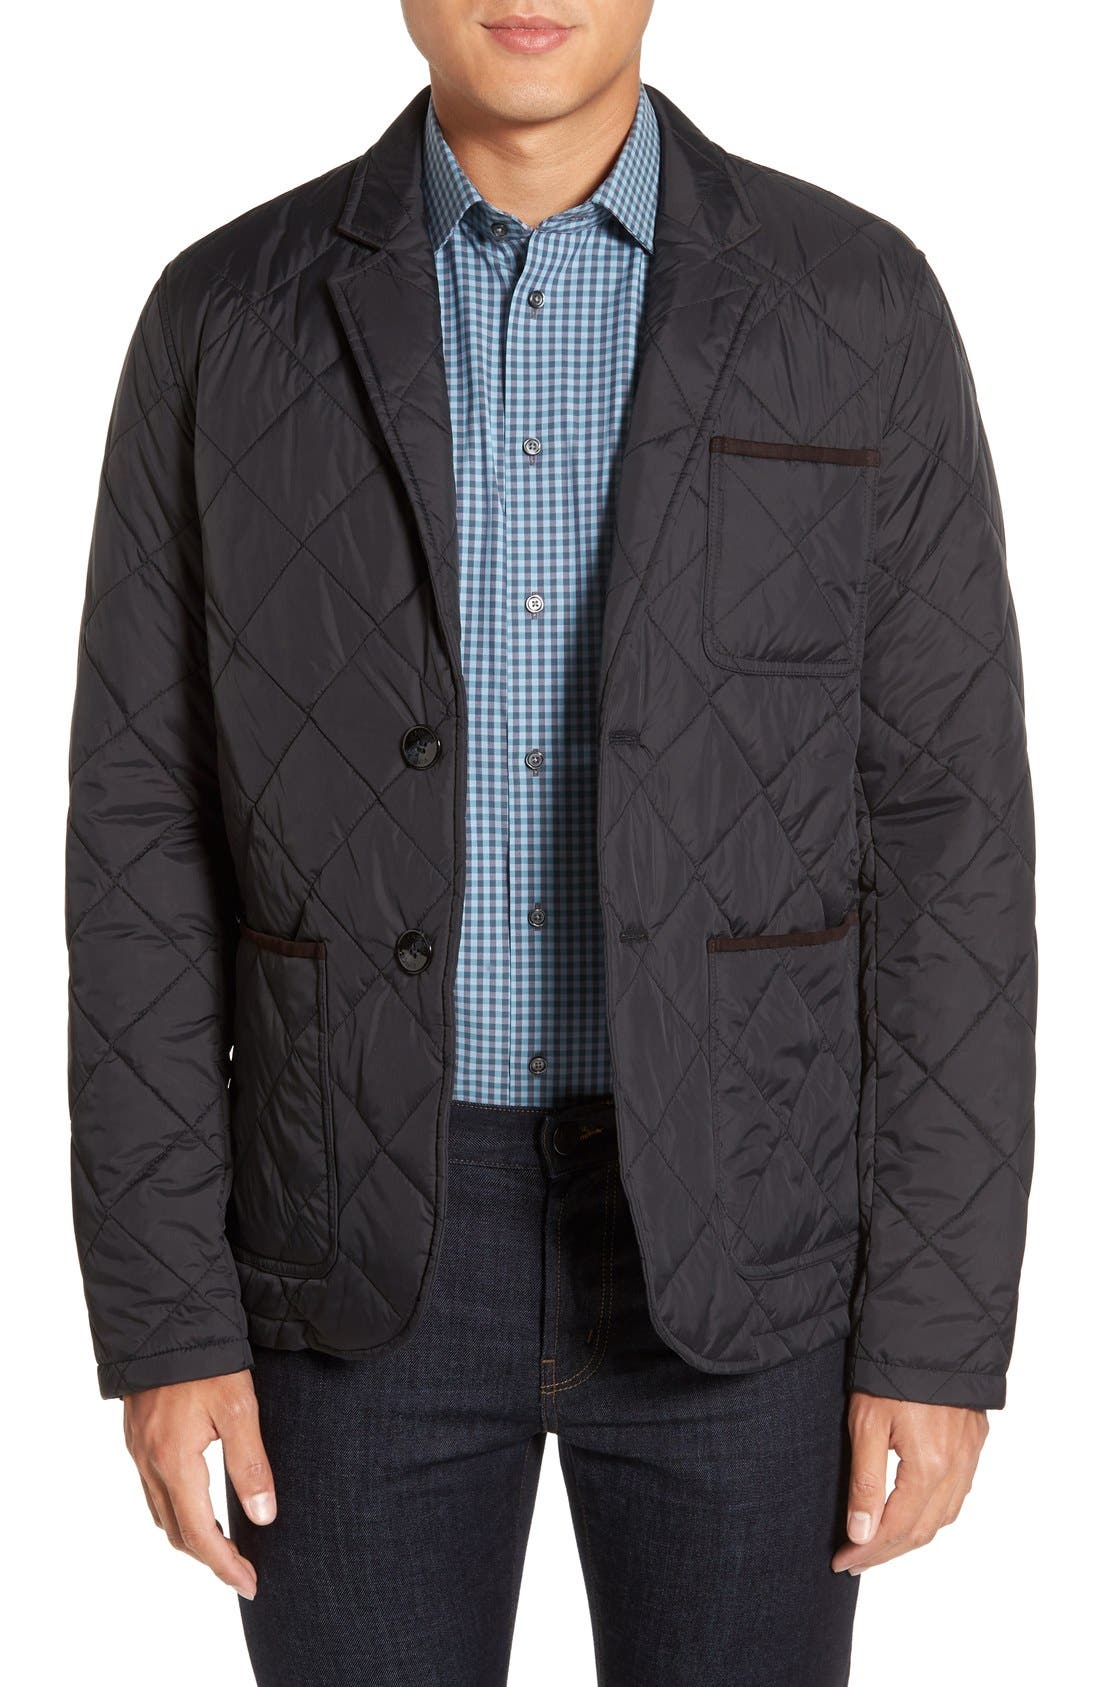 Vince Camuto Water Resistant Quilted Jacket